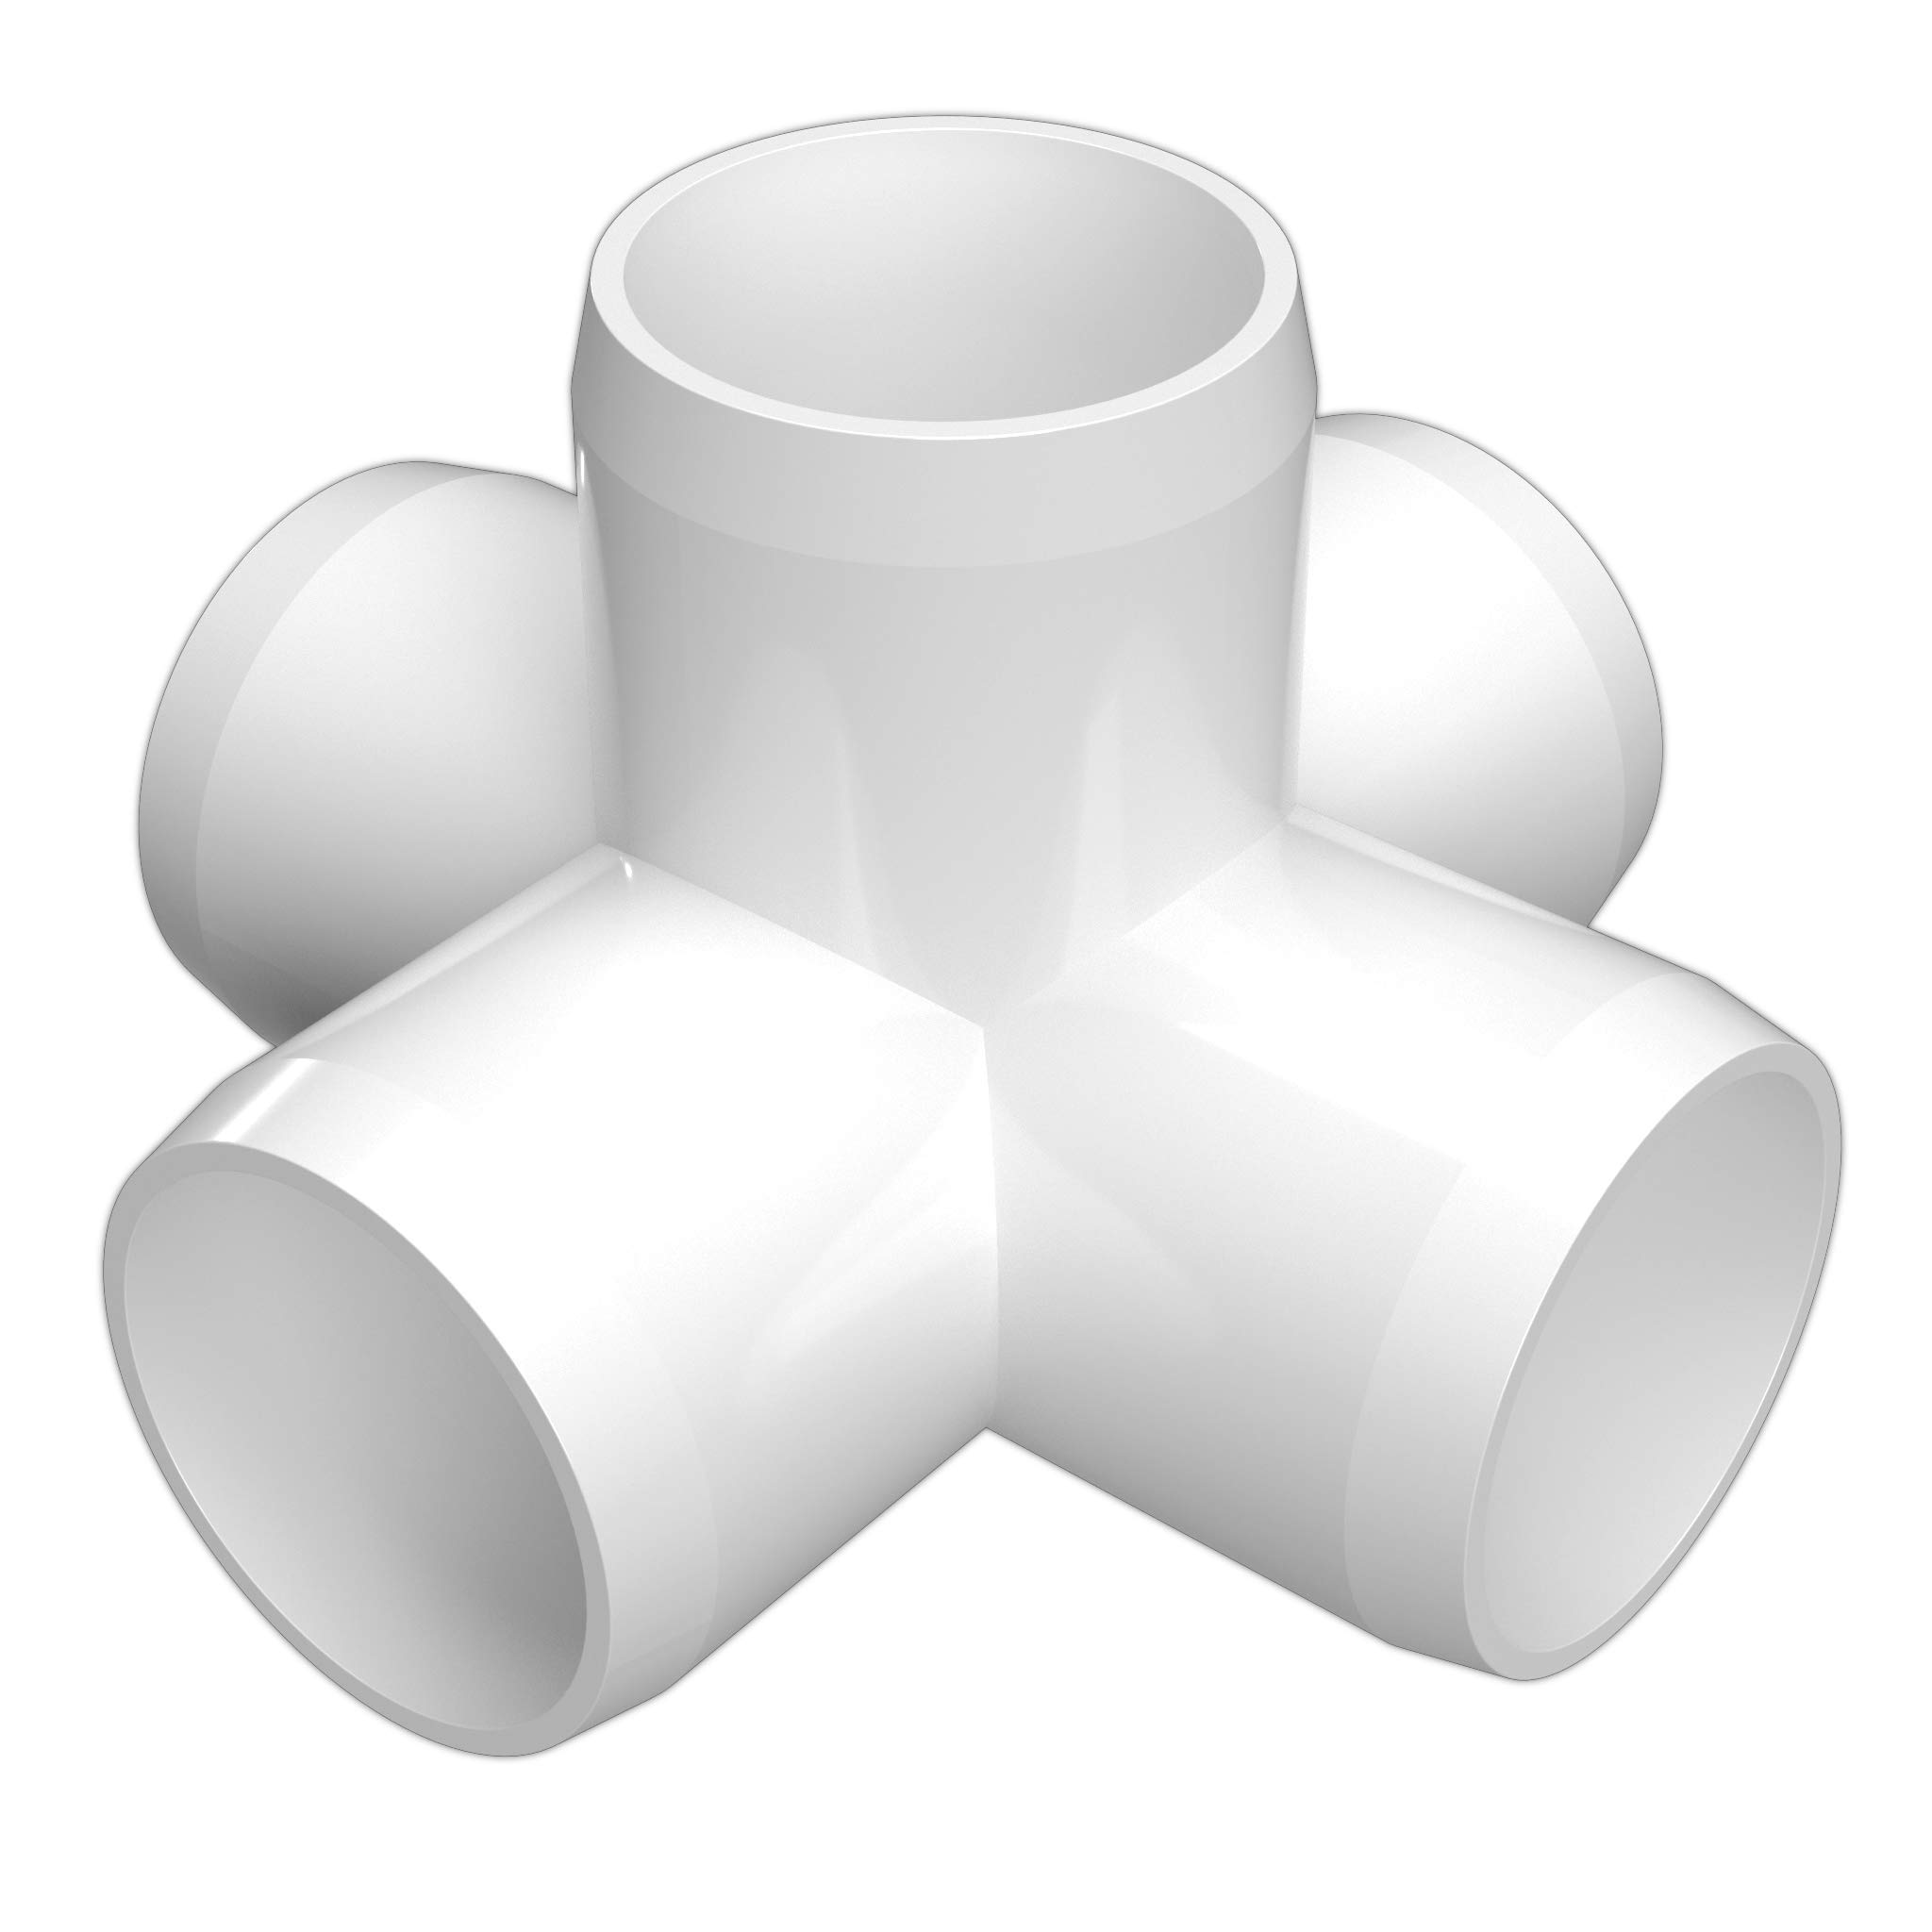 FORMUFIT F1145WC-WH-4 5-Way Cross PVC Fitting, Furniture Grade, 1-1/4'' Size, White (Pack of 4) by FORMUFIT